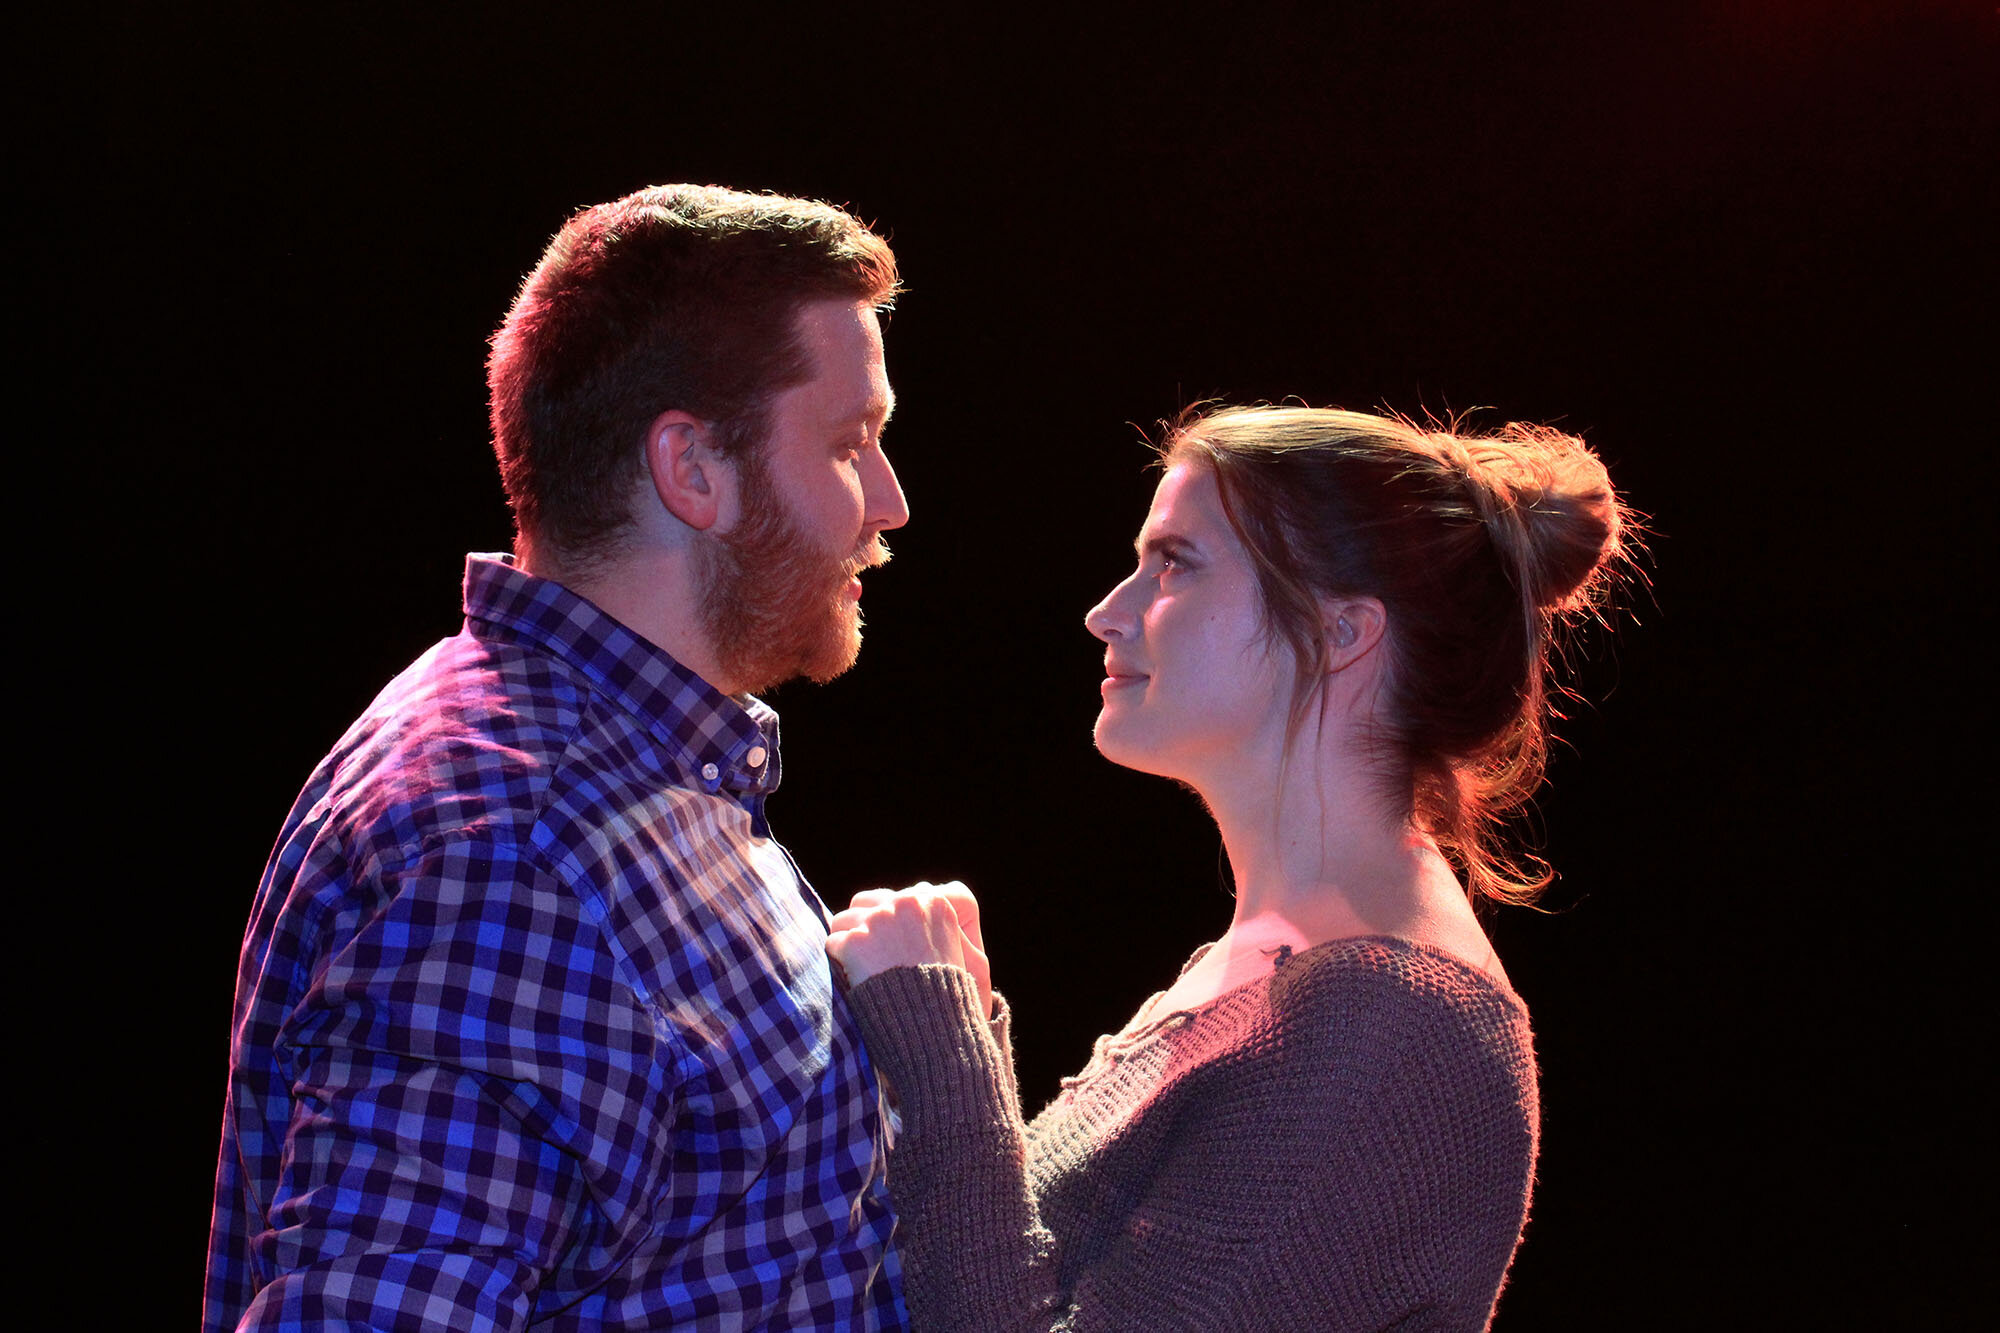 Brian Barlow and Sandra Lawler appear in Constellations at the Players Club of Swarthmore, www.pcstheater.org.  Photo by Sabrina Boyd-Surka.